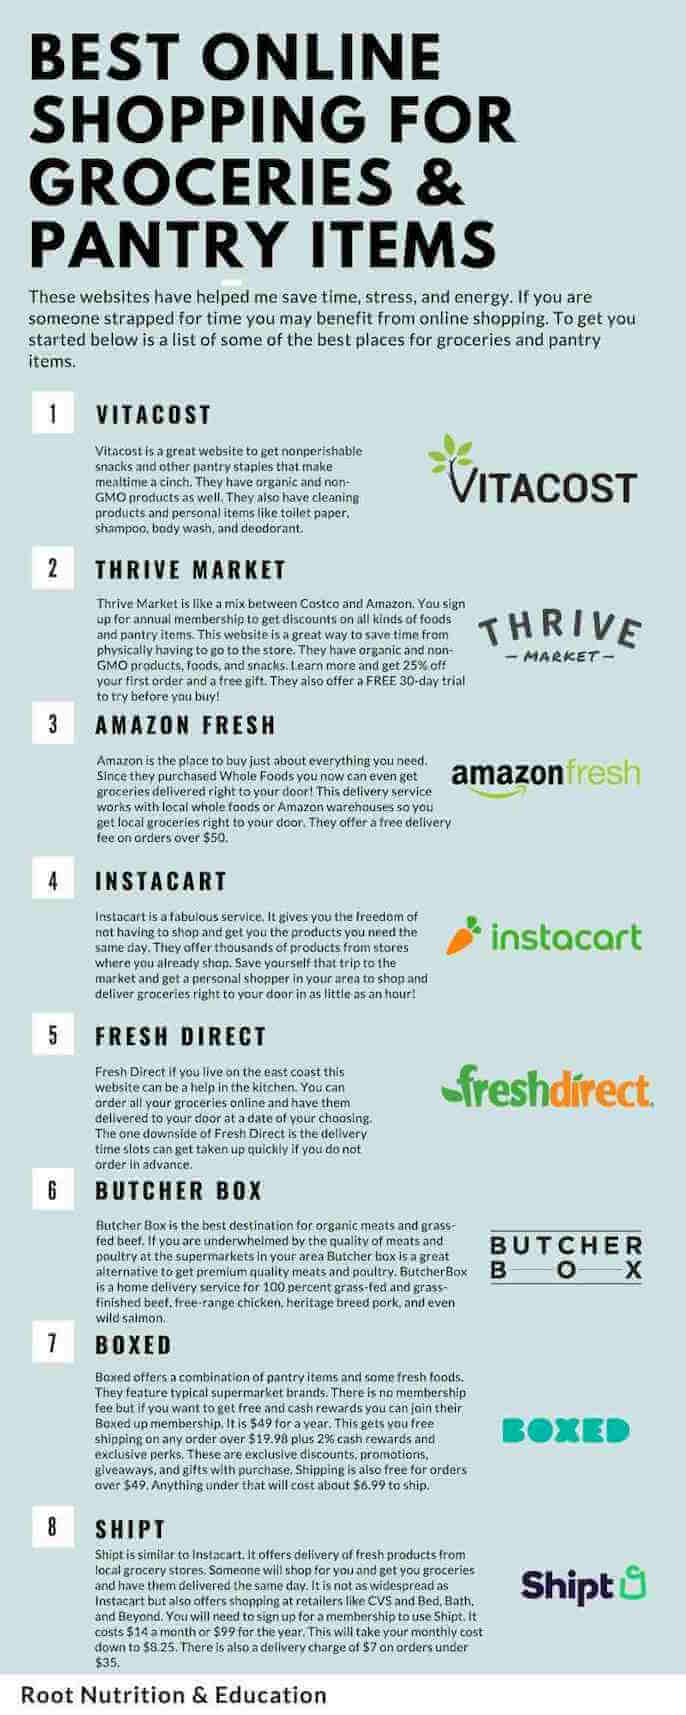 Best Online Shopping for Groceries Infographic | Root Nutrition & Education